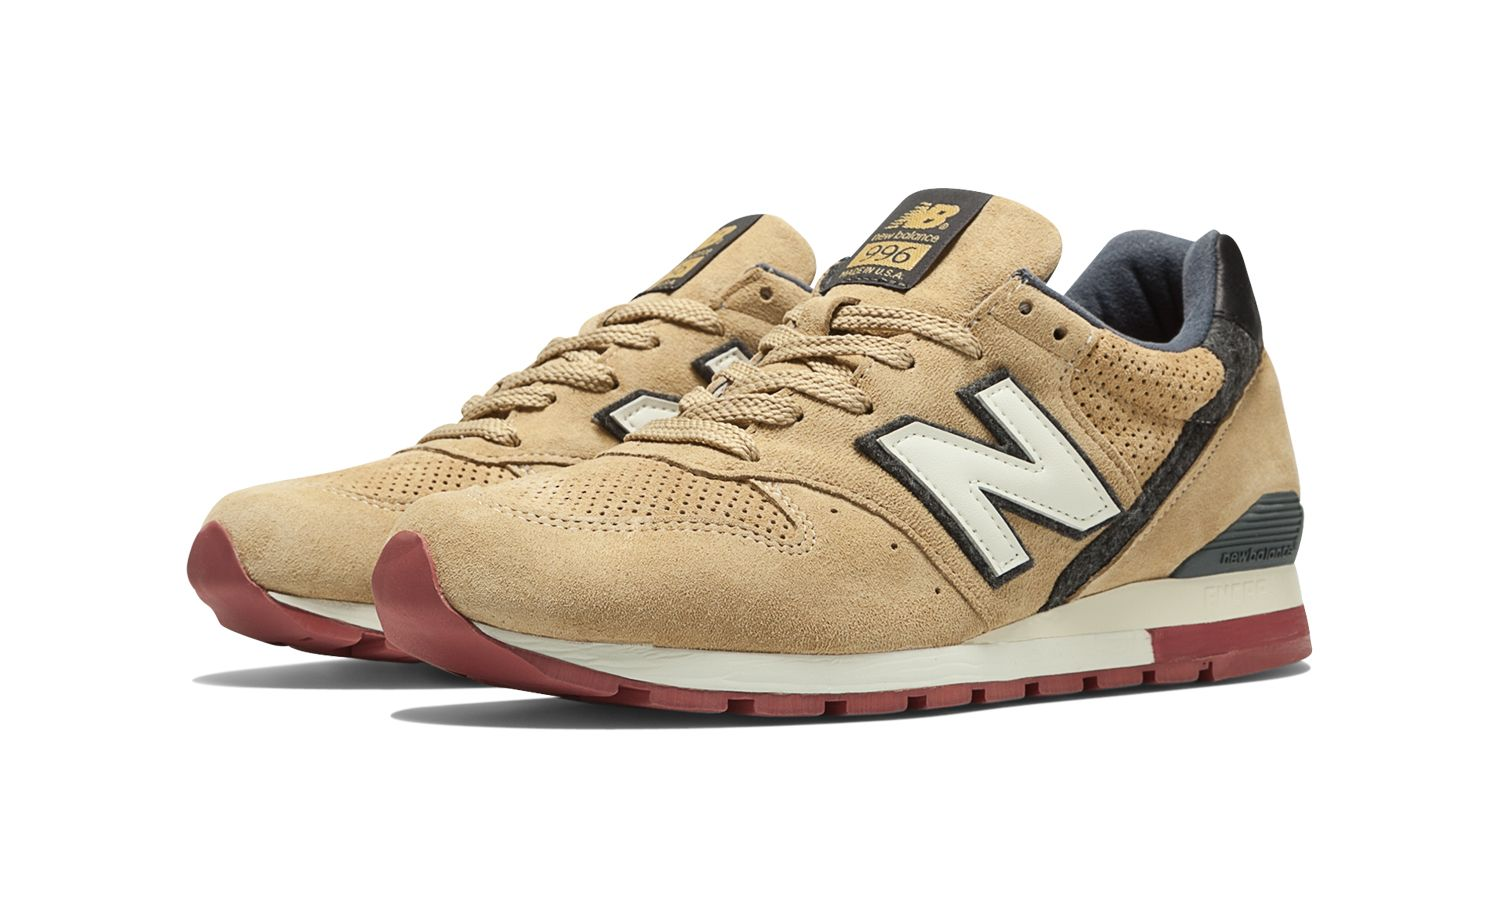 New Balance 996 Distinct